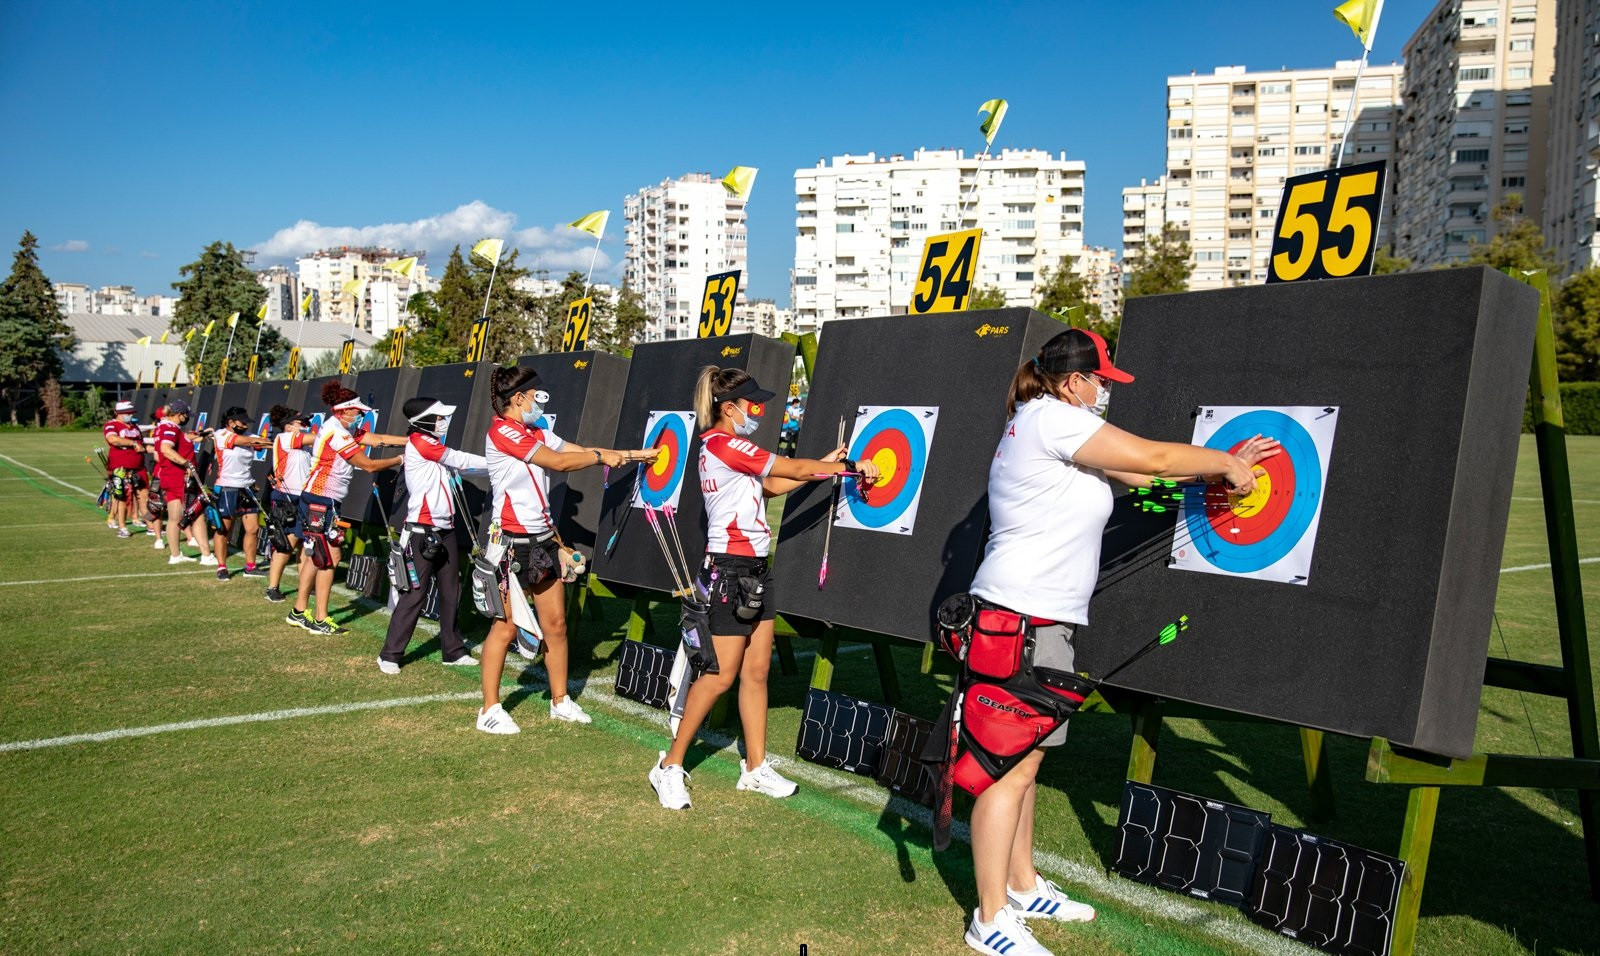 World Archery's mission and vision statements were updated to provide guidance post-pandemic ©World Archery